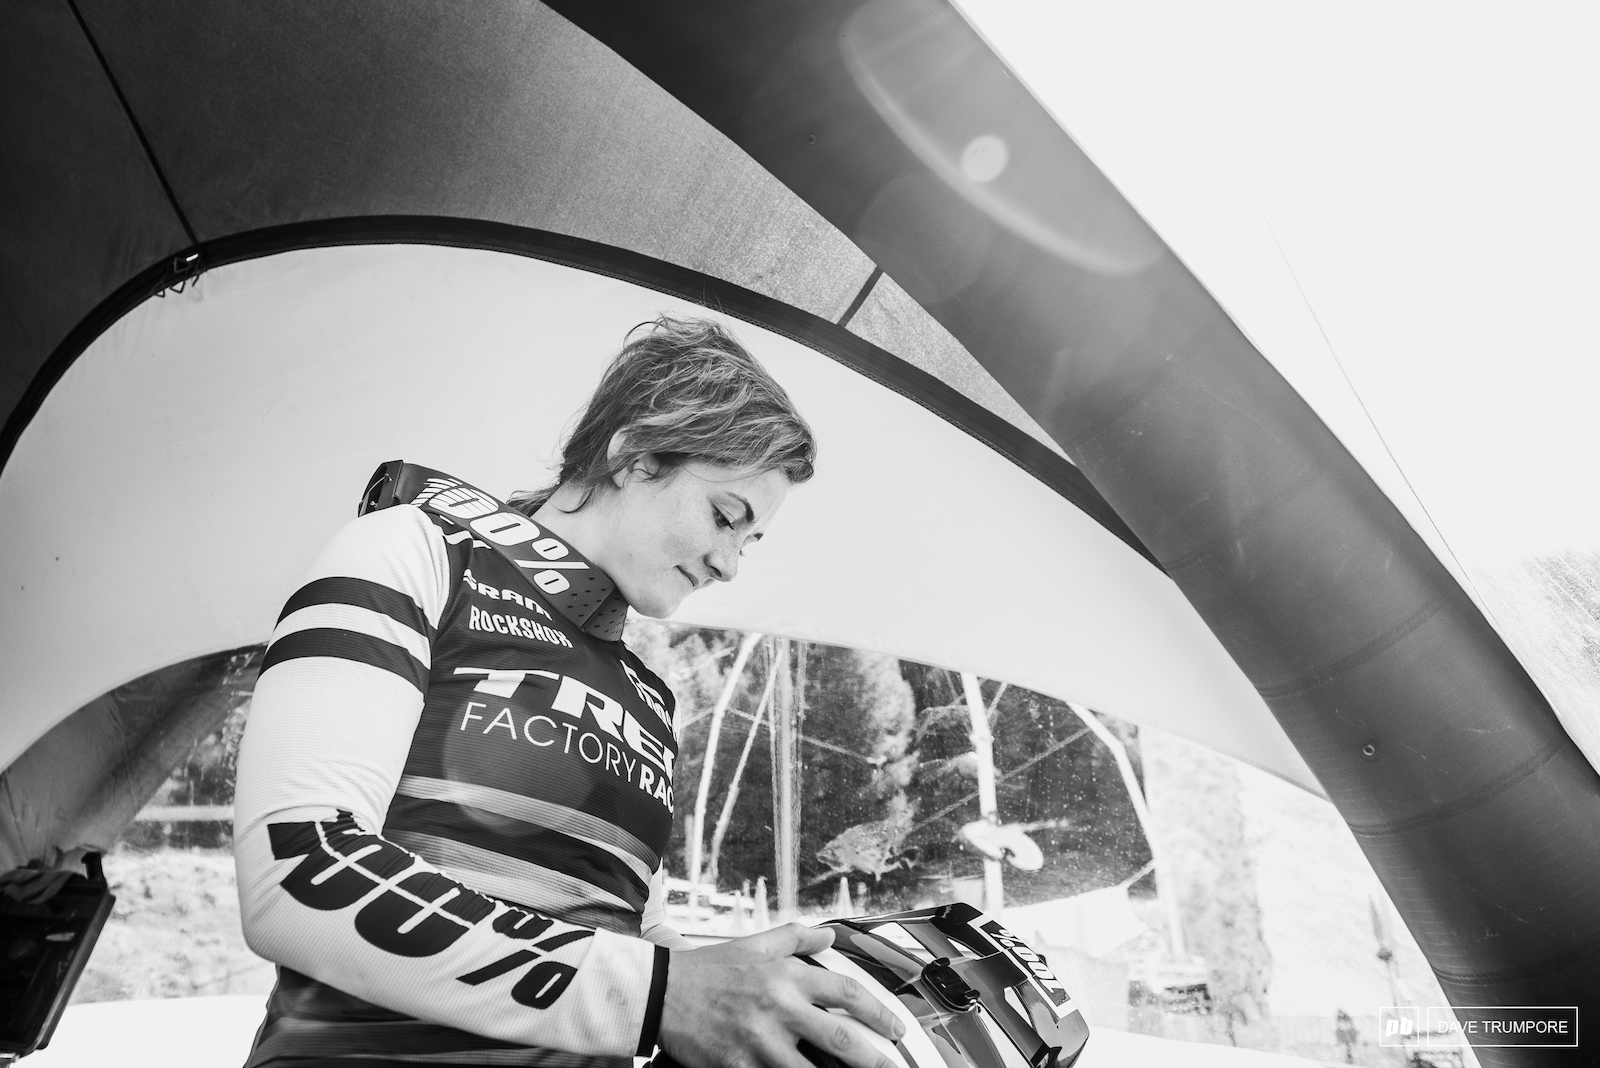 Katy Winton is fully recovered as thrilled to be back racing at the EWS once again.